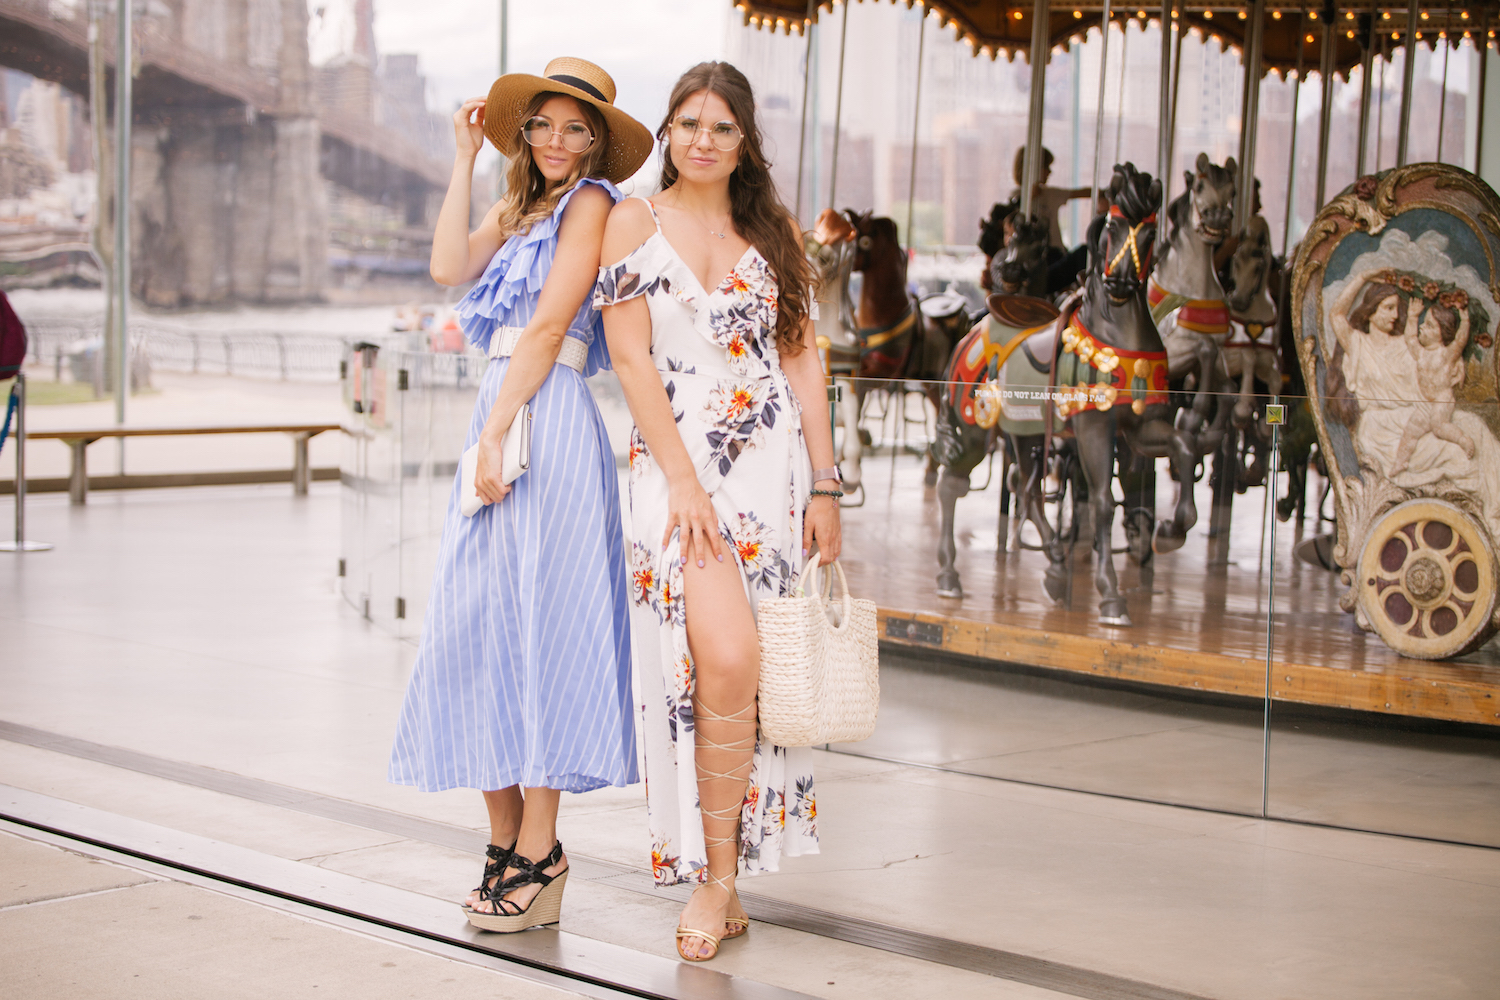 shein-collaboration-allbuenothings-sheinside-summer-dresses-nyc-blogger-bff-goals